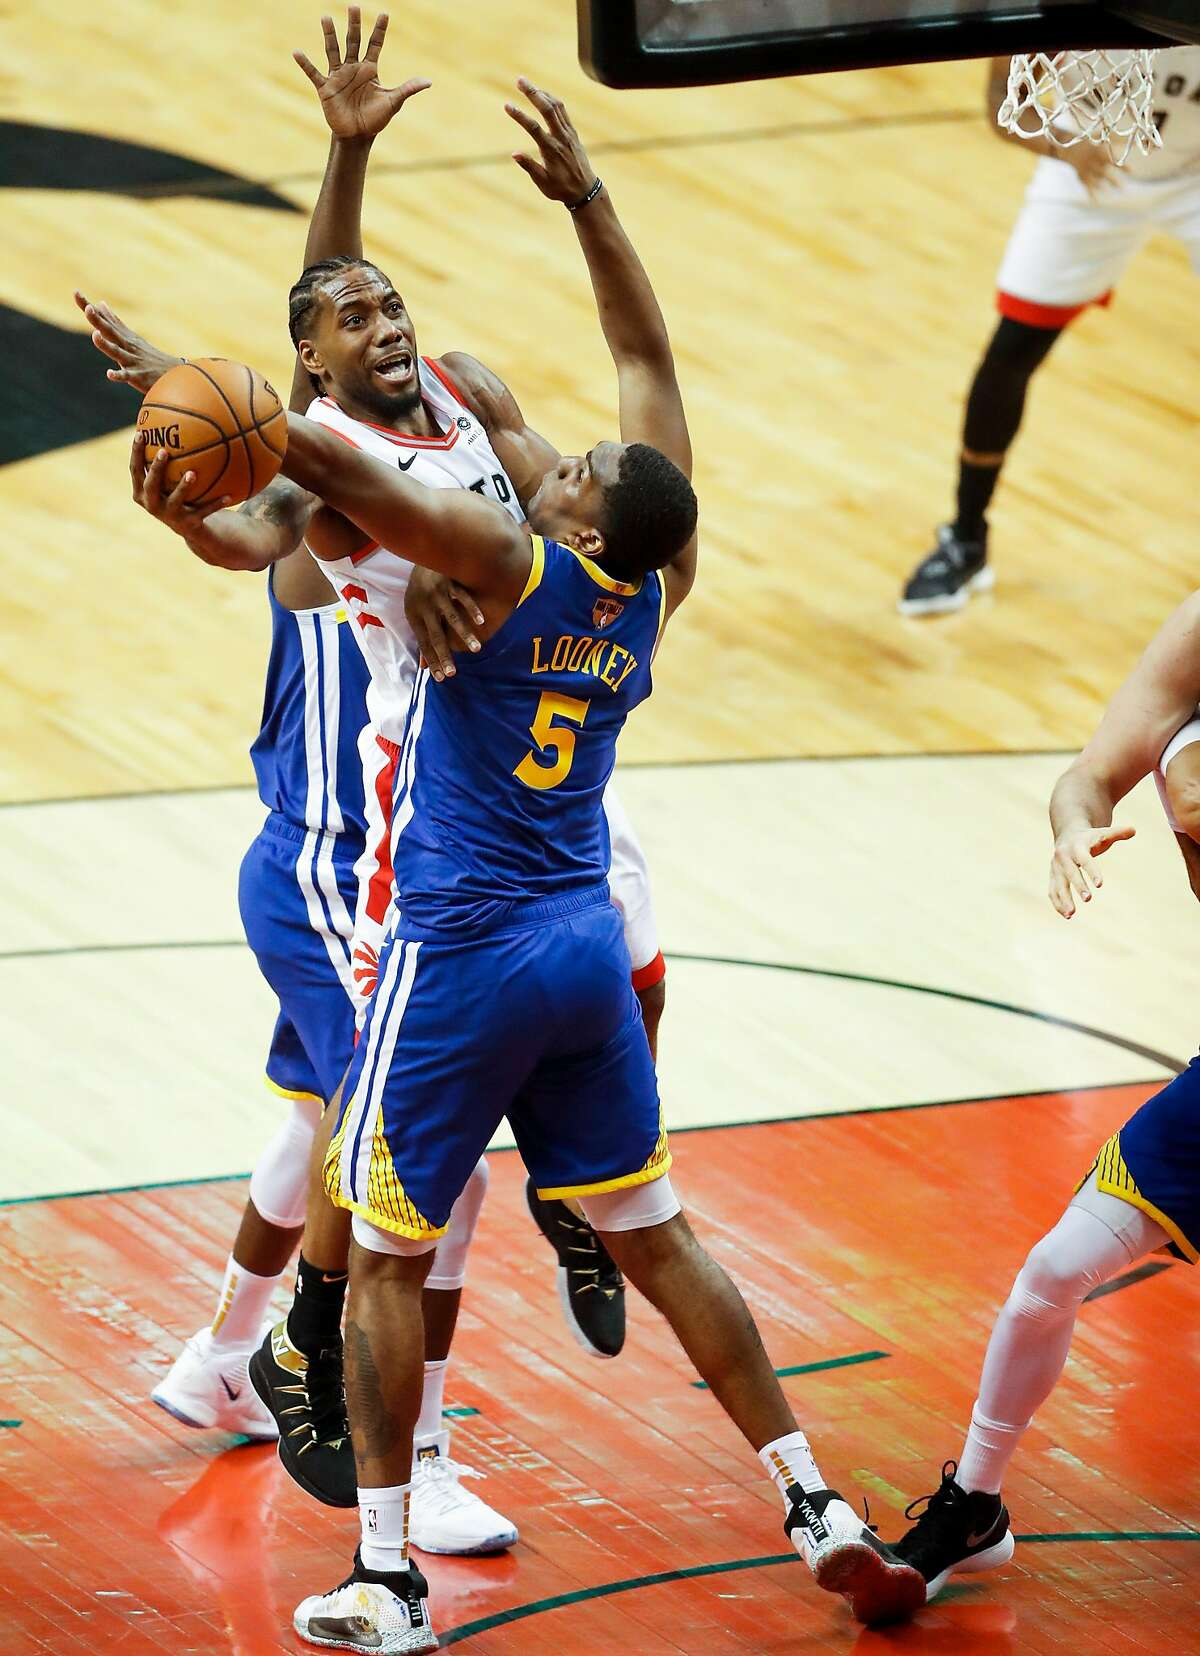 Golden State Warriors' Draymond Green and Kevon Looney defend against Toronto Raptors' Kawhi Leonard in the second quarter during game 1 of the NBA Finals between the Golden State Warriors and the Toronto Raptors at Scotiabank Arena on Thursday, May 30, 2019 in Toronto, Ontario, Canada.